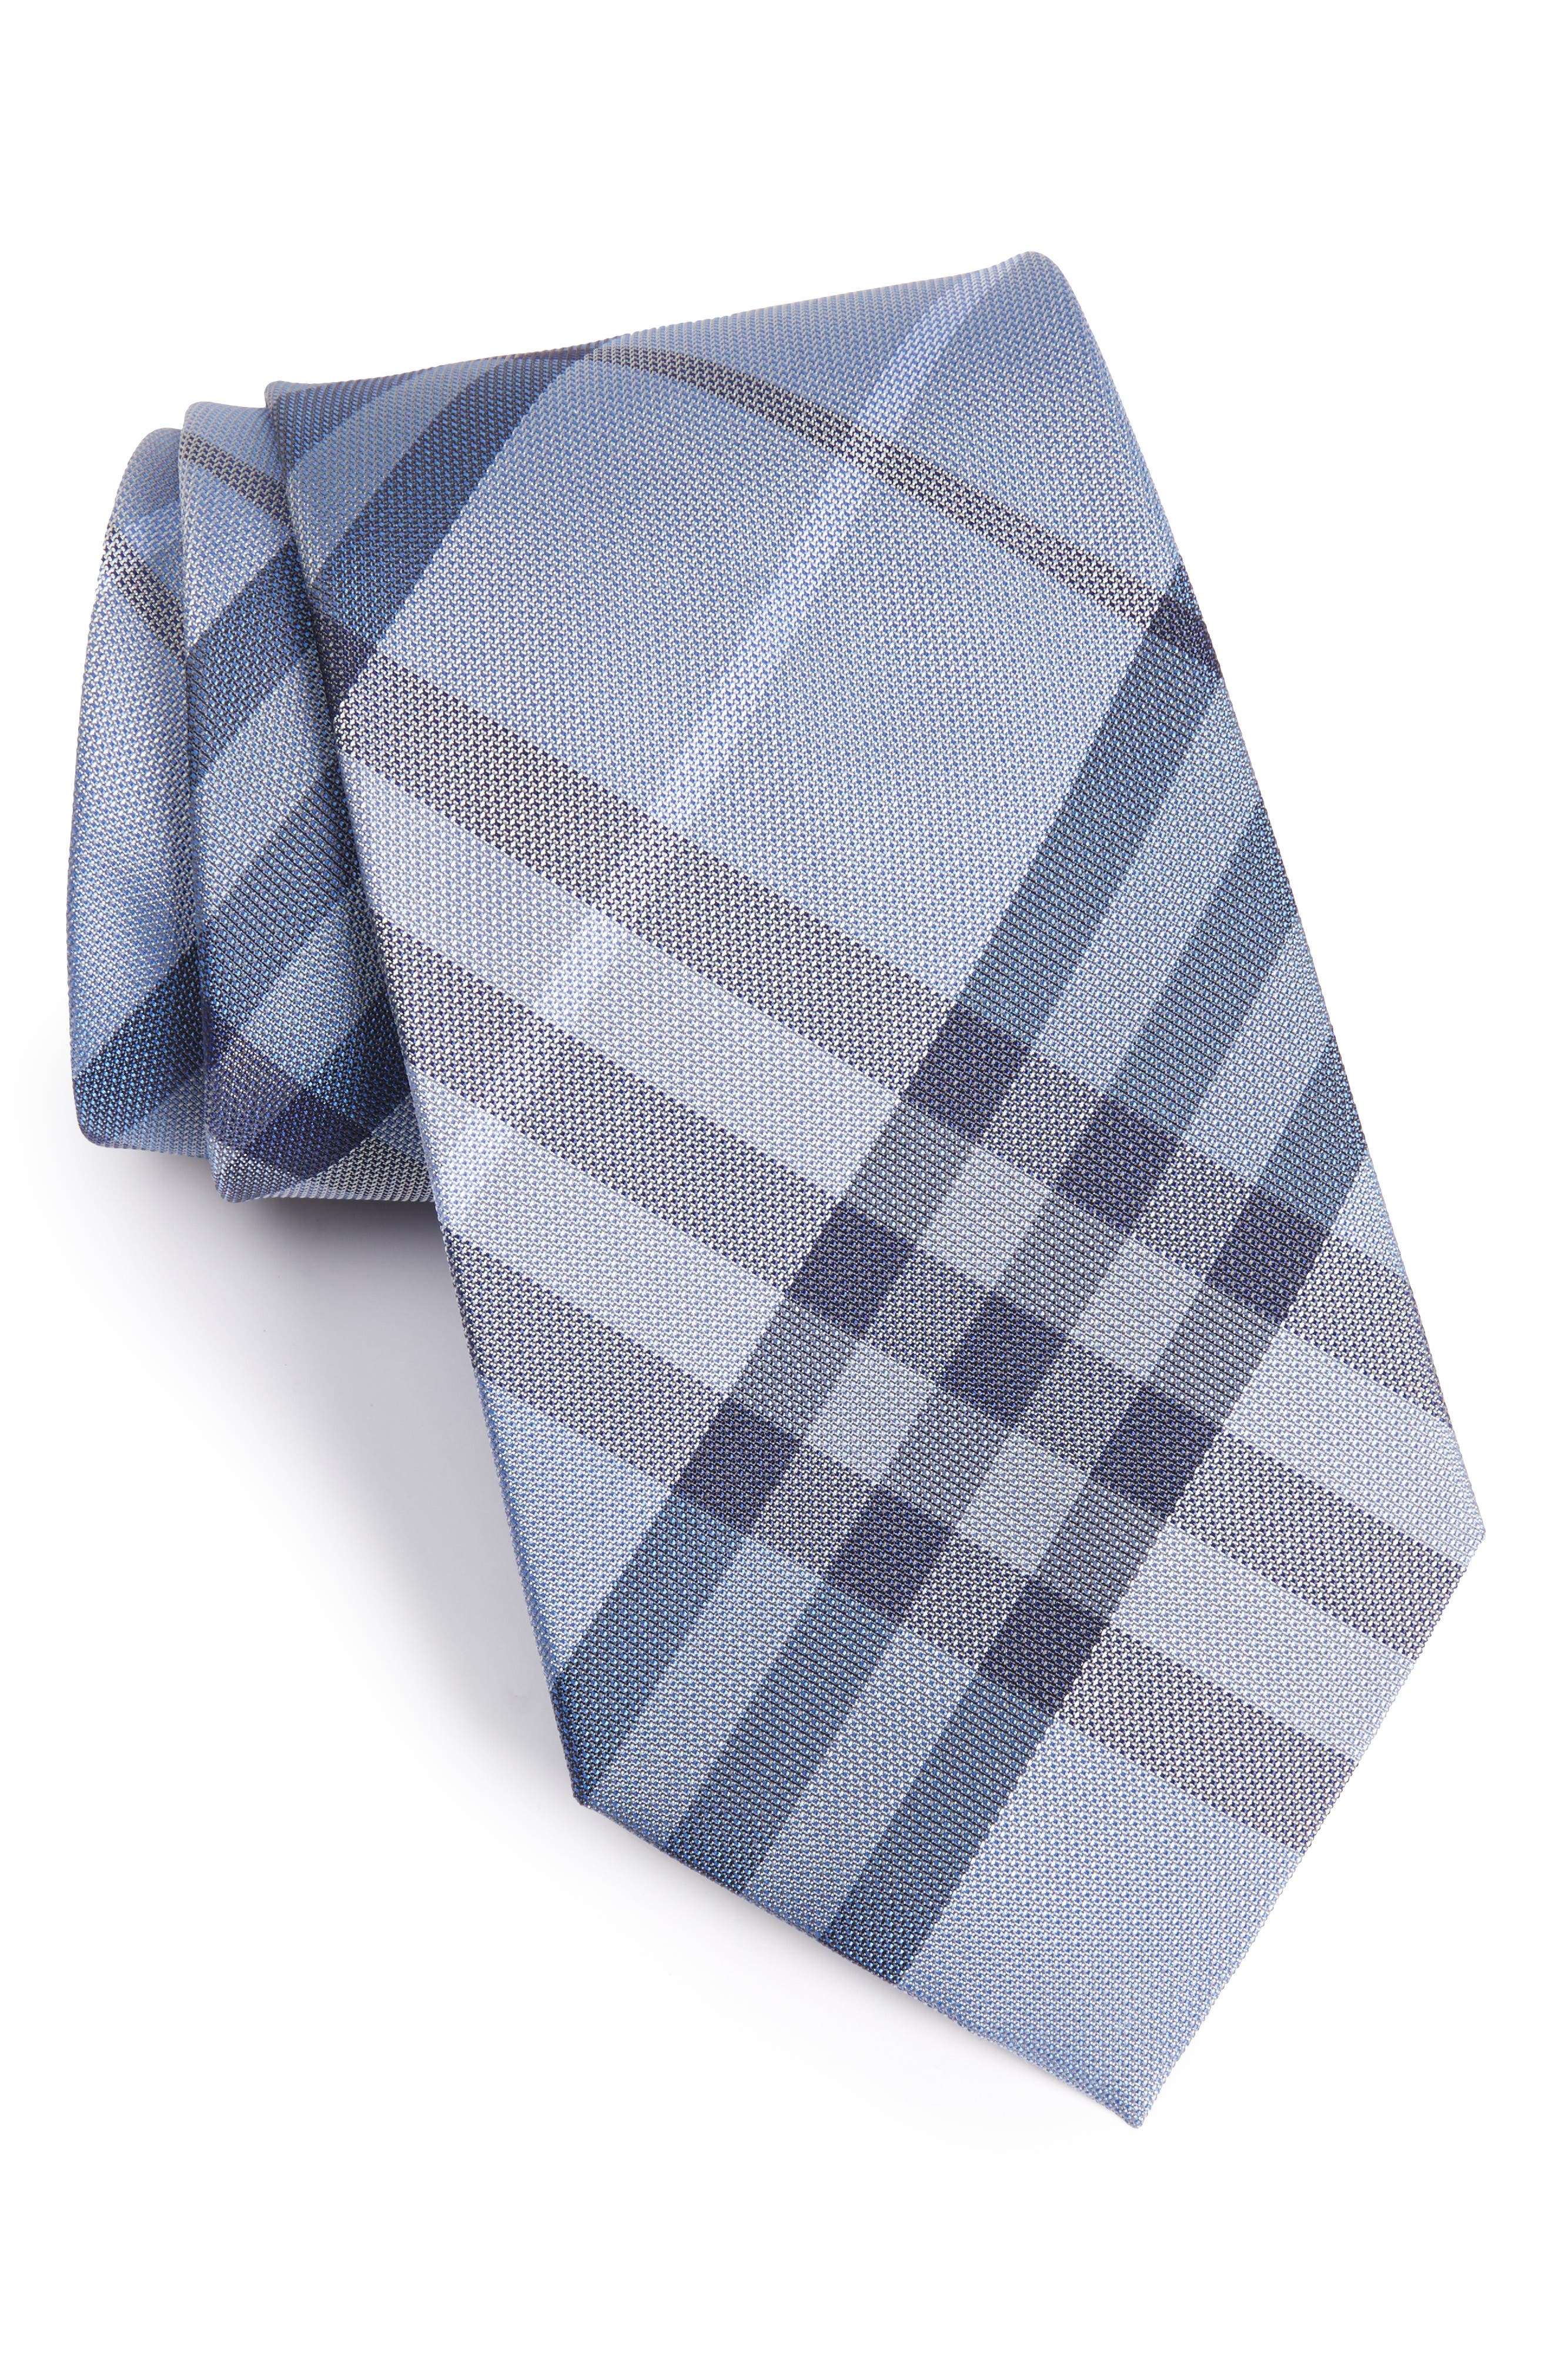 Main Image - Burberry Clinton Check Silk Tie